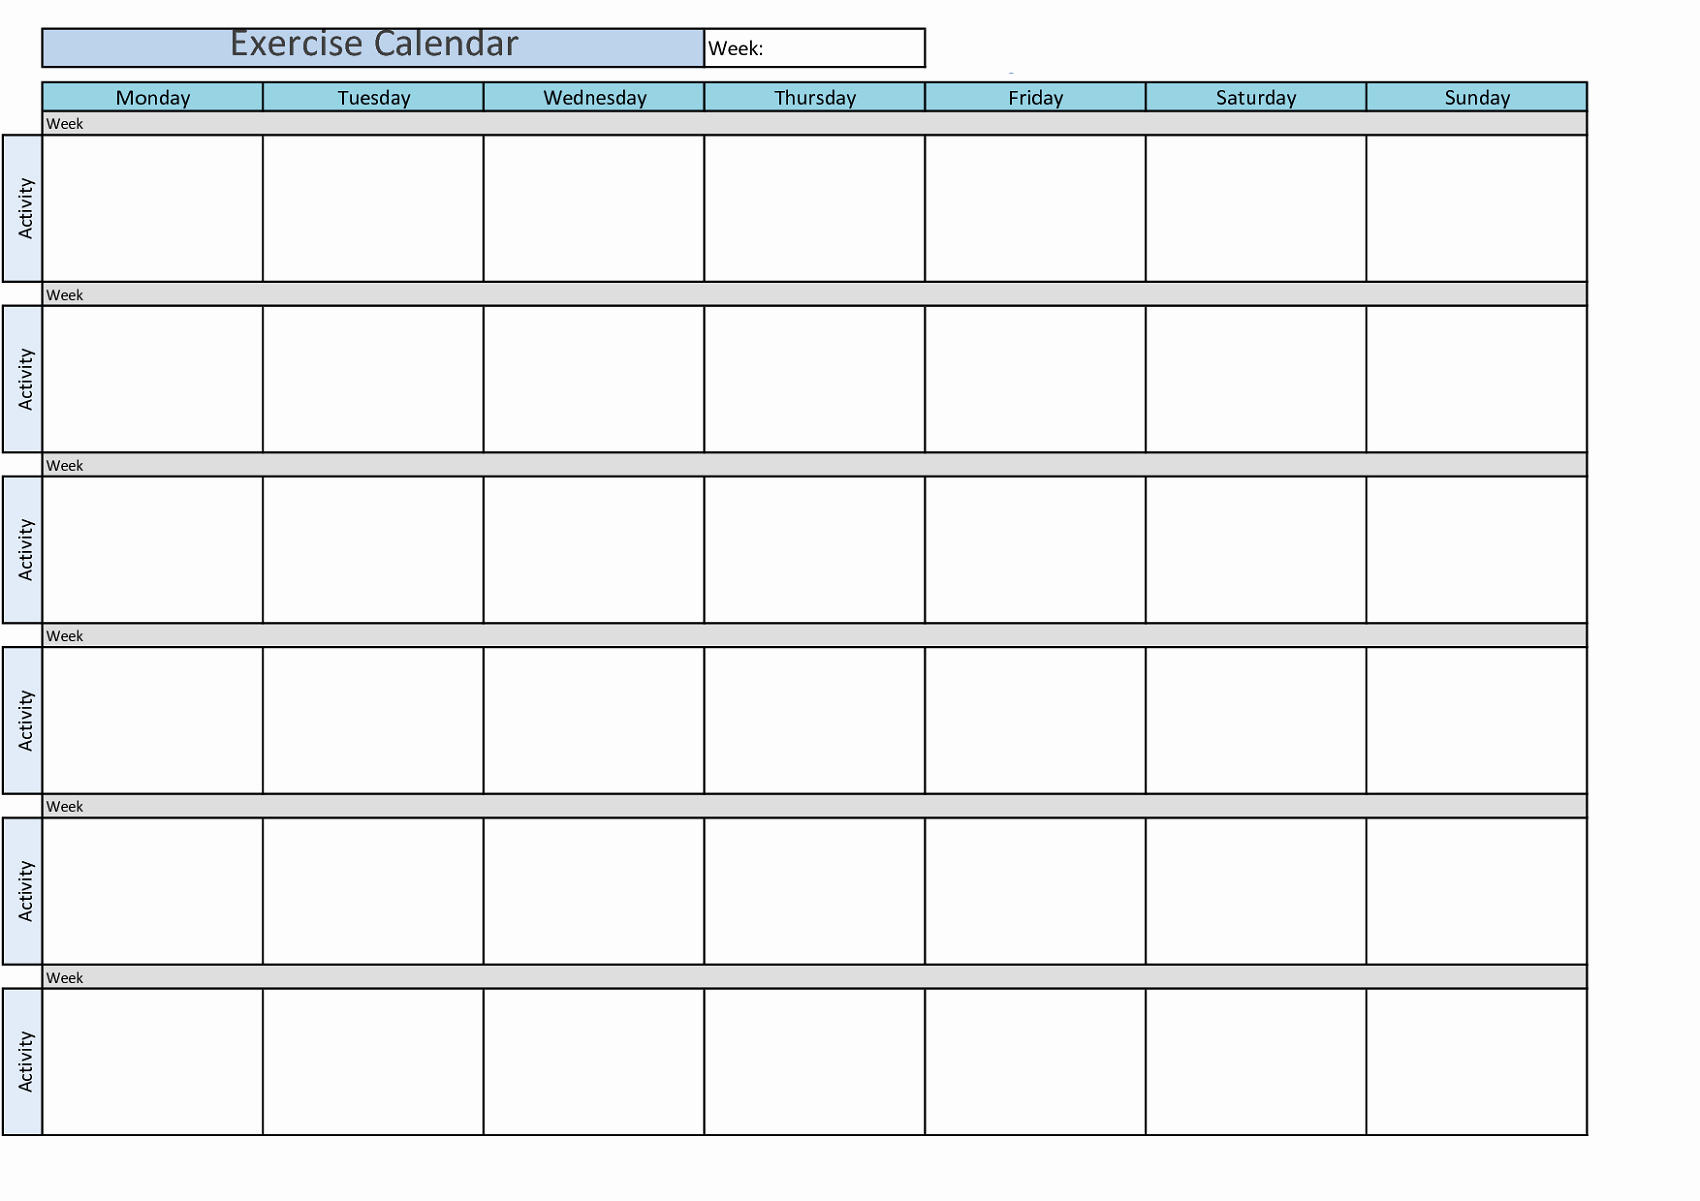 Weekly Workout Planner Template Best Of Printable Workout Calendar